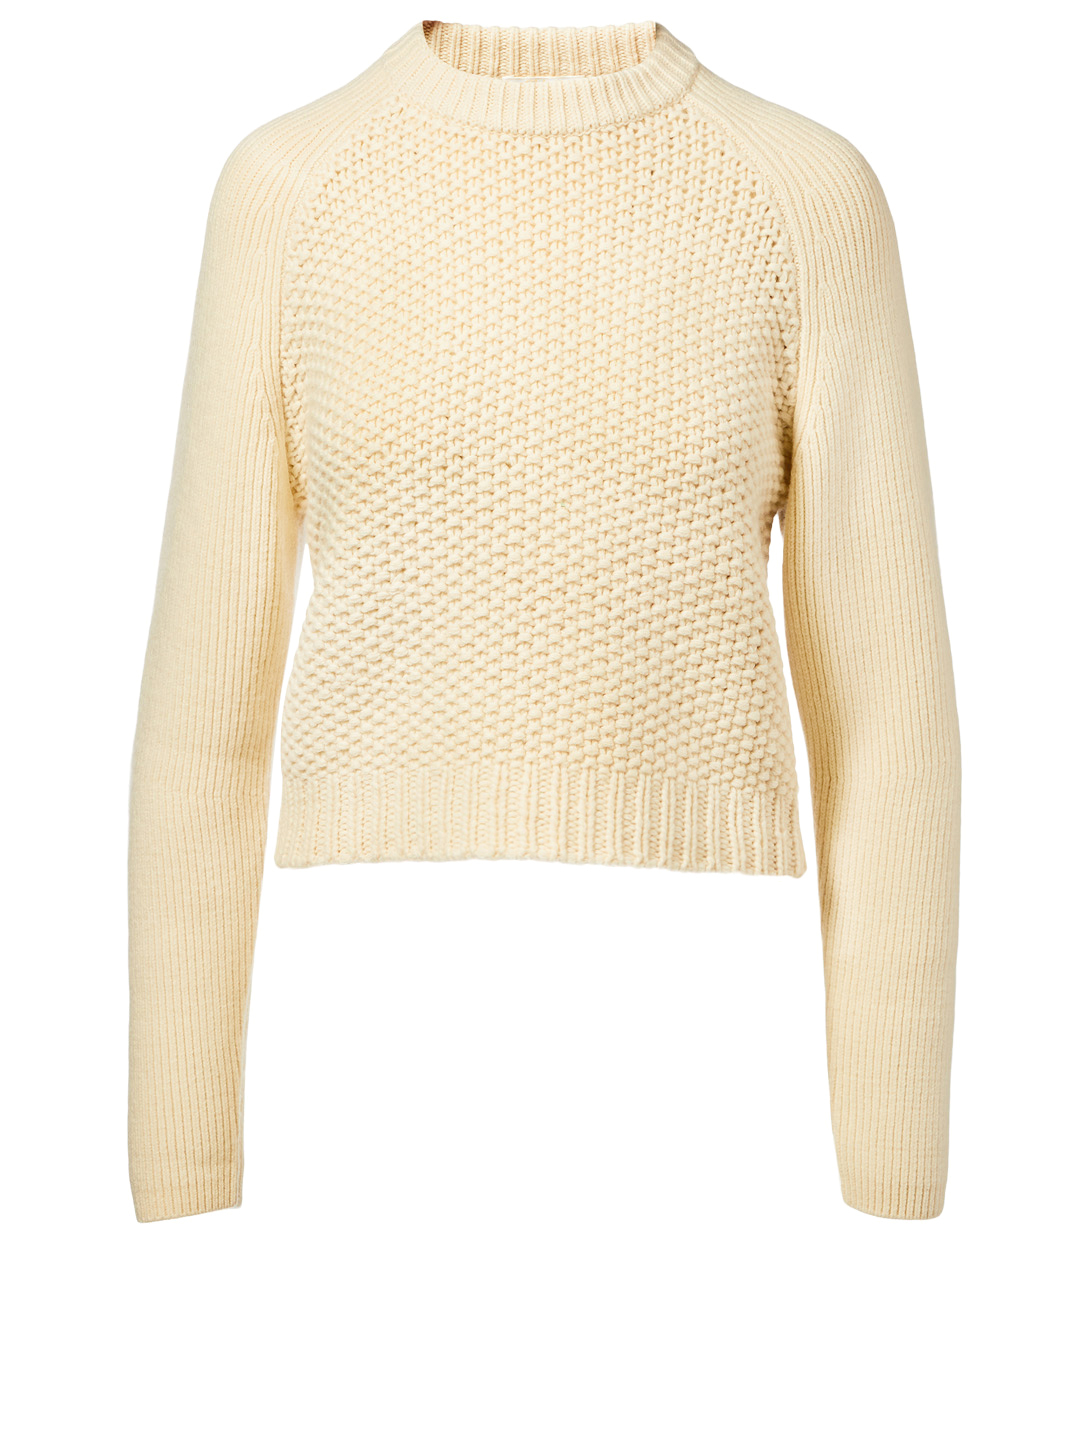 f8b0503ed175 CHLOÉ Wool And Cashmere Mixed Knit Sweater Women s White ...